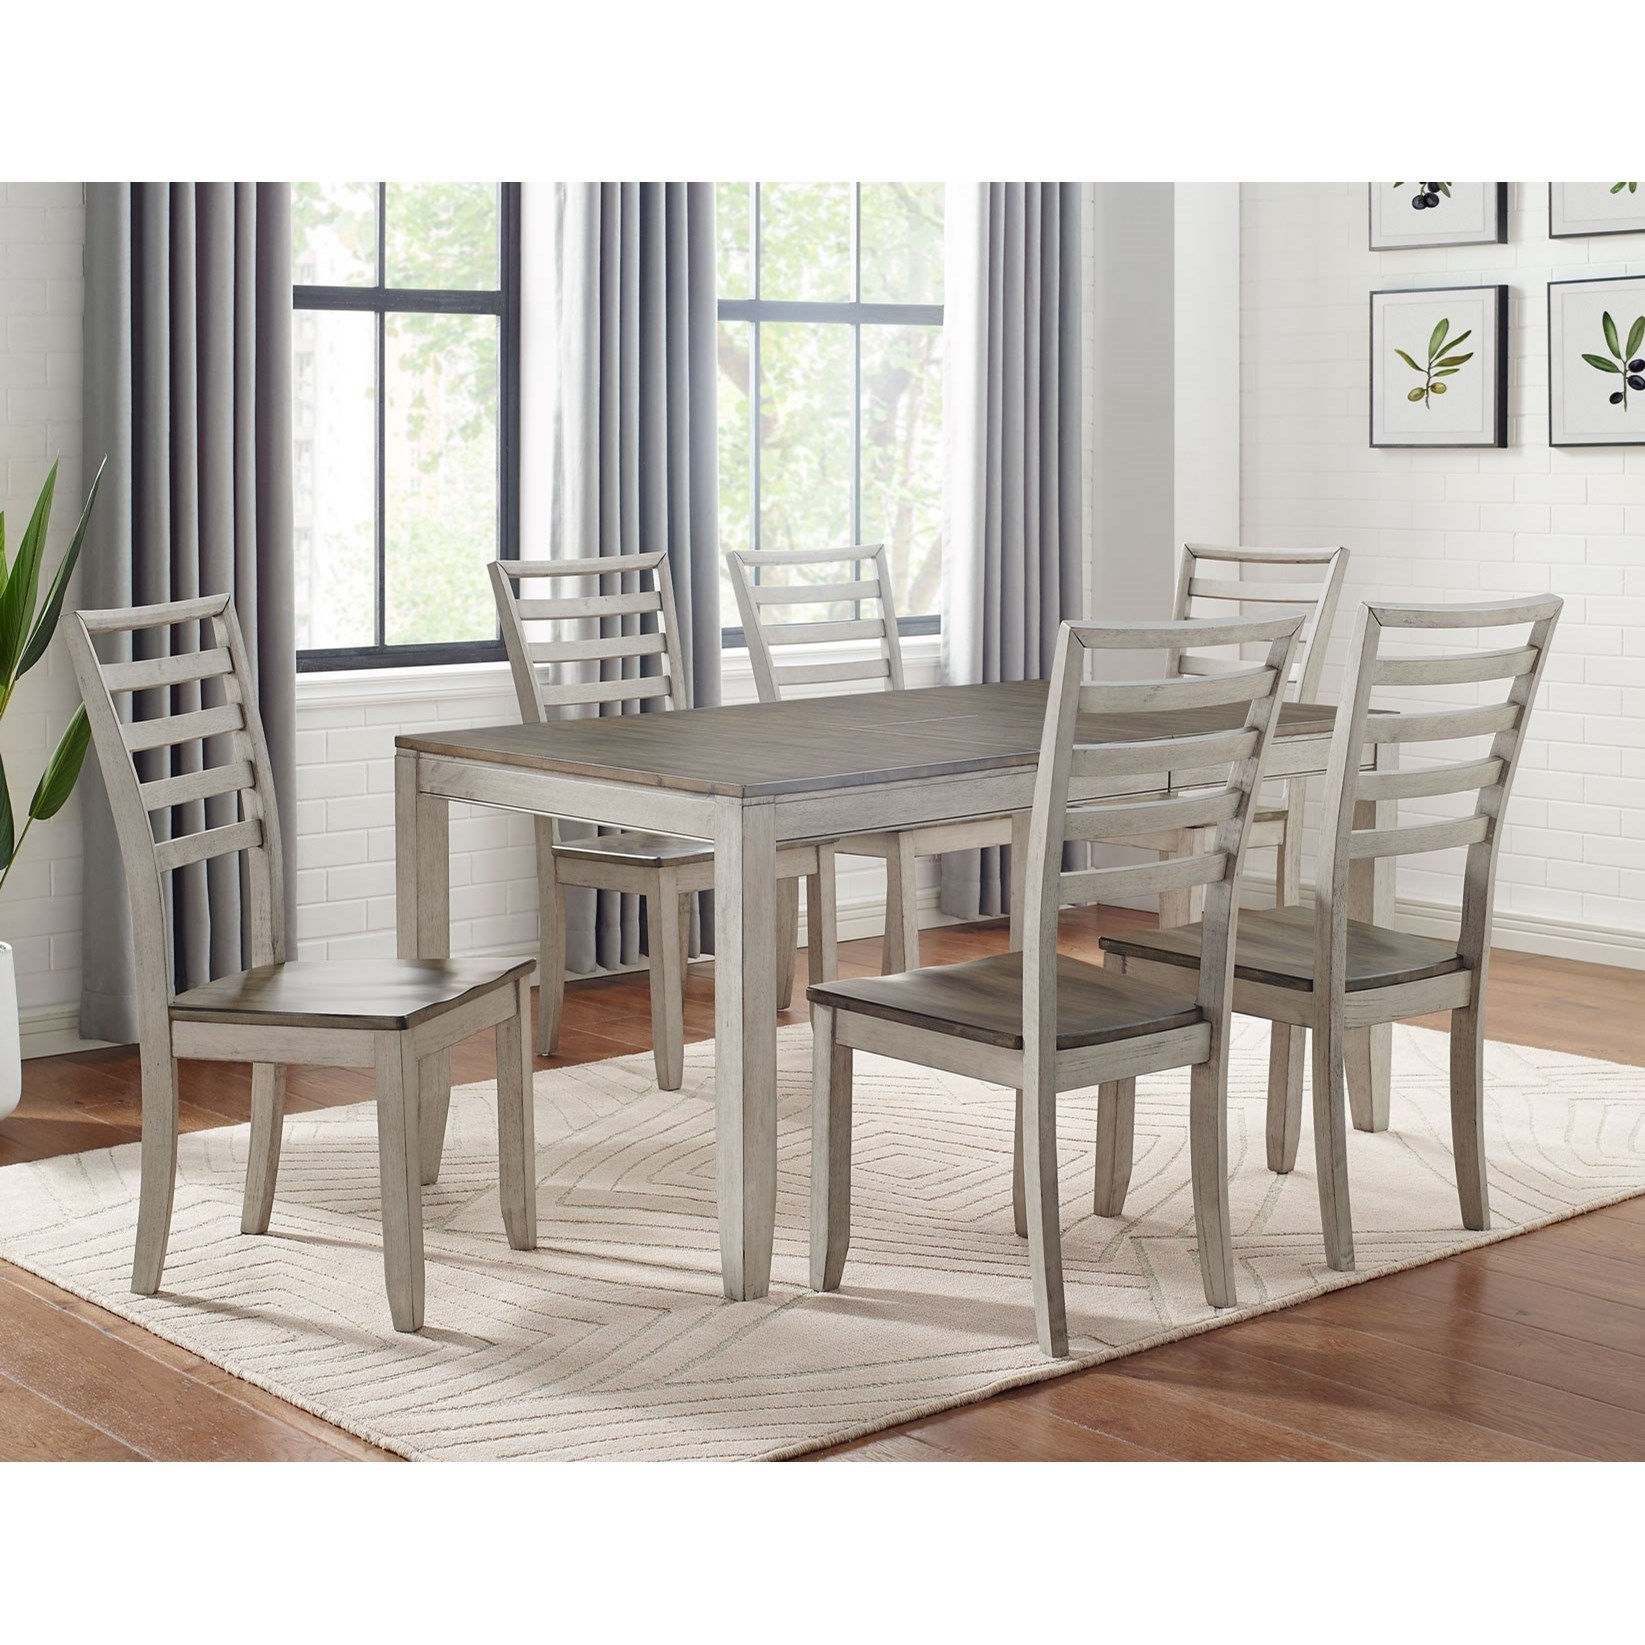 Abacus 7-Piece Table and Chair Set by Steve Silver at A1 Furniture & Mattress